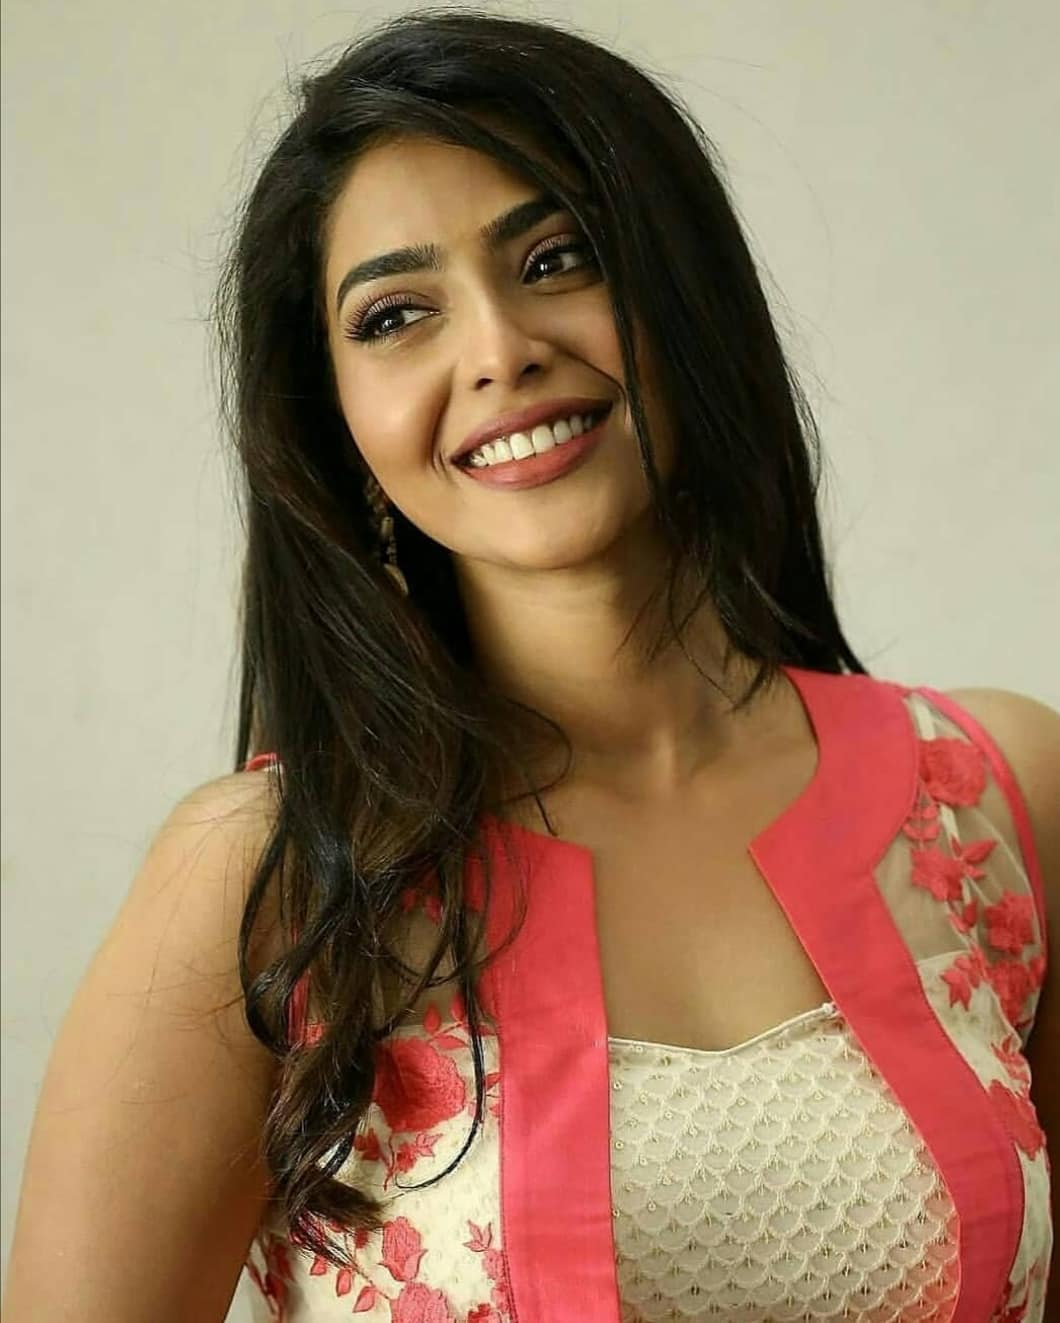 Aishwarya lekshmi  IMAGES, GIF, ANIMATED GIF, WALLPAPER, STICKER FOR WHATSAPP & FACEBOOK